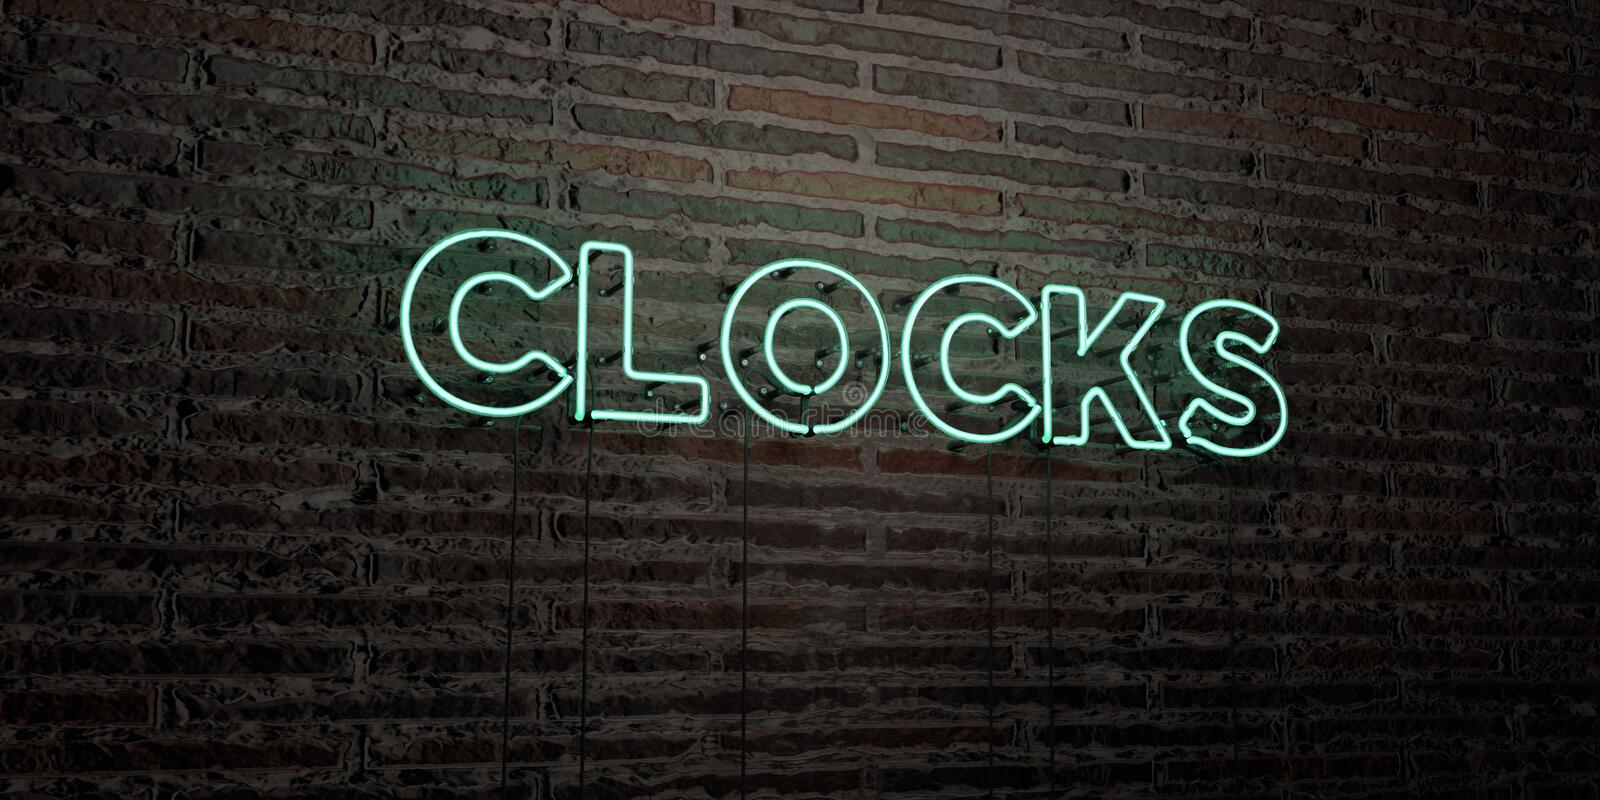 CLOCKS -Realistic Neon Sign on Brick Wall background - 3D rendered royalty free stock image. Can be used for online banner ads and direct mailers vector illustration